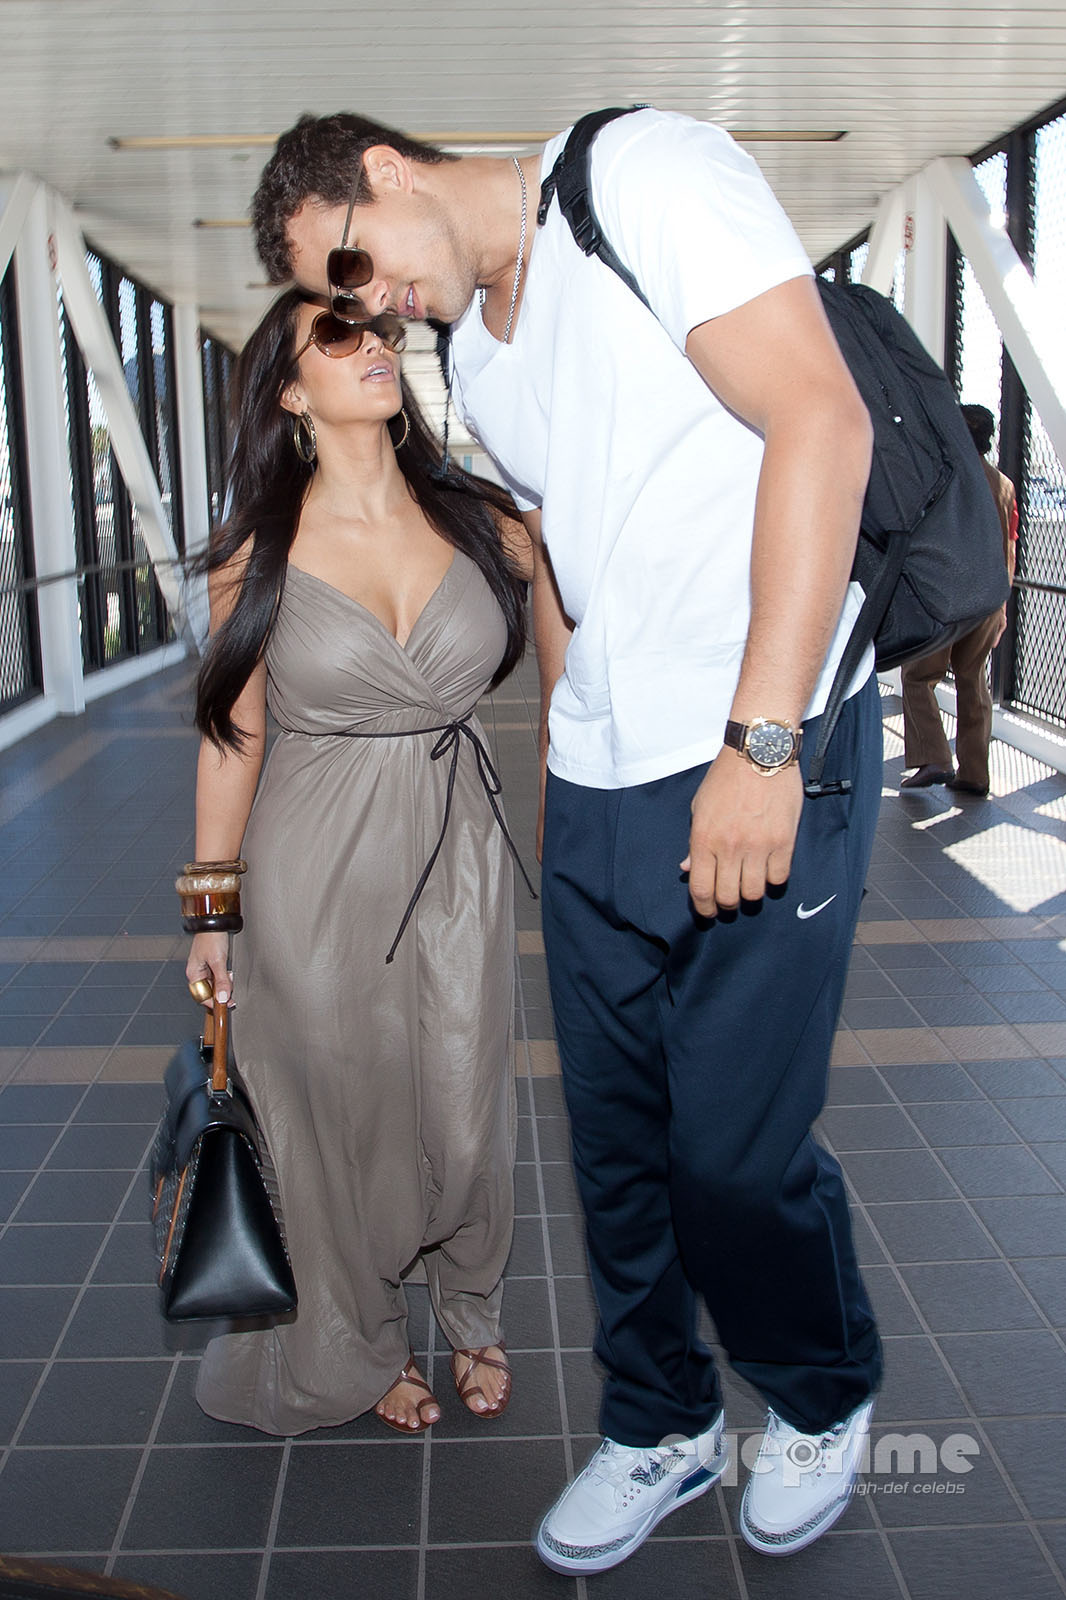 http://2.bp.blogspot.com/-RaZQzcS9psw/UQ6--TmsZ0I/AAAAAAAA6q0/7vKeRvMc3ak/s1600/Kim-Kardashian-and-husband-Kris-Humphries-depart-LAX-Aug-22-kim-kardashian-and-kris-humphries-24753378-1066-1600.jpg